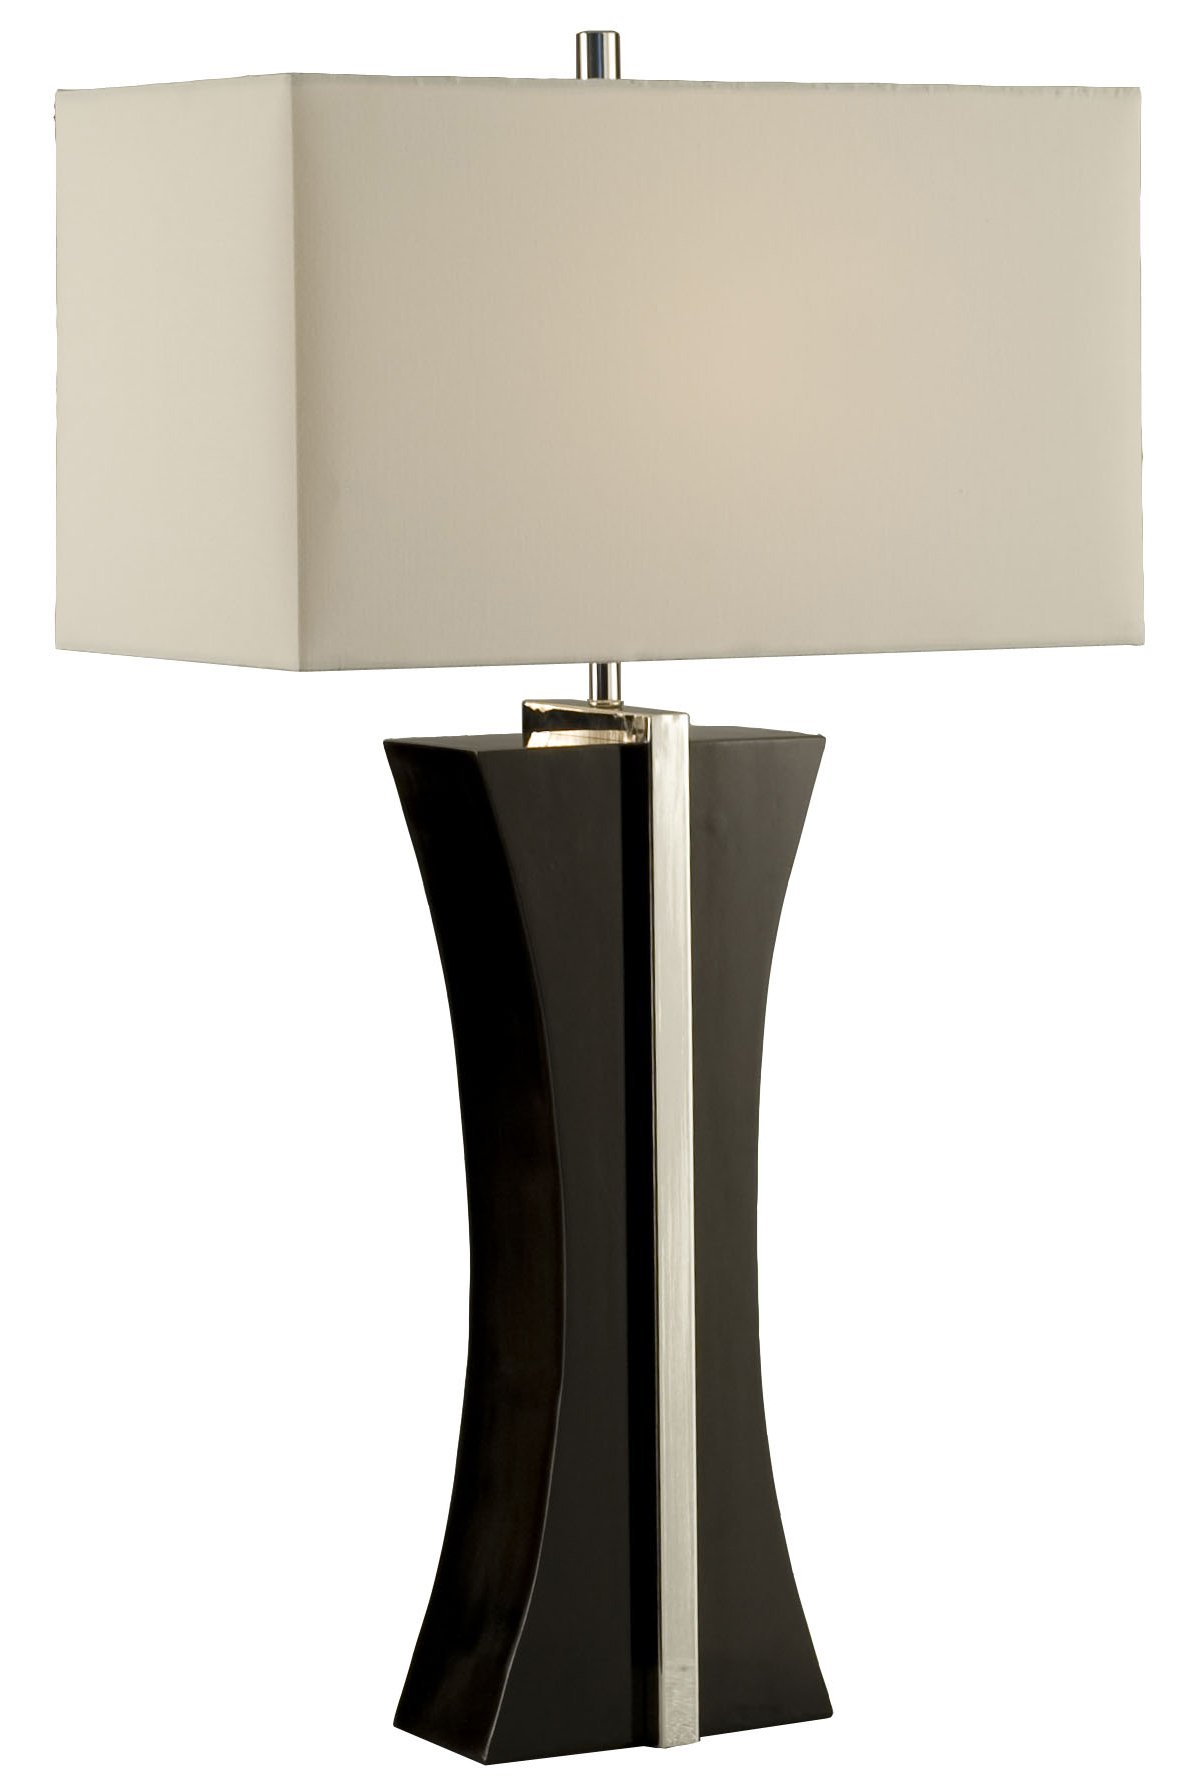 Contemporary Lamp Tables Nova Lighting 1010046 Ridgeway Modern Contemporary Table